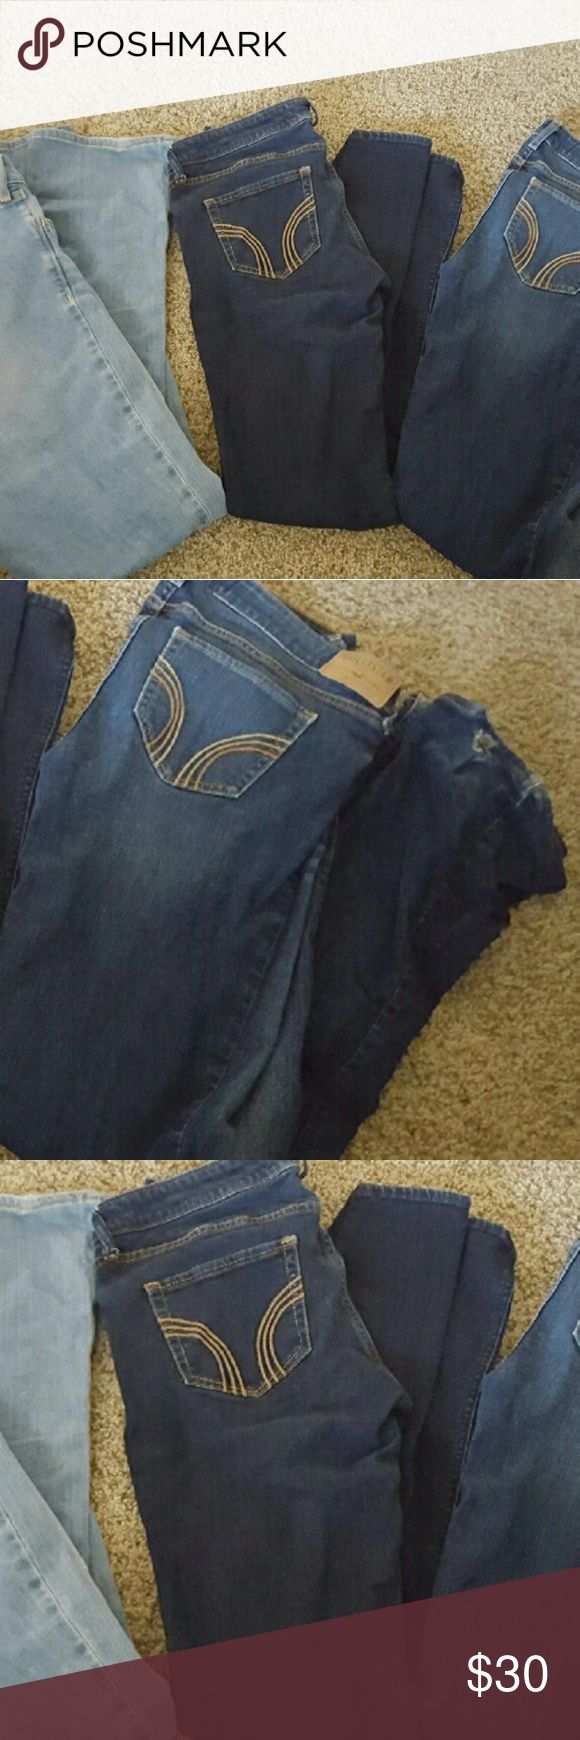 Hollister Jean bundle Hollister jeans size 9L, 2 boot cut and 1 skinny. The dark boot cut pair has wear and tear at the bottom by the ankle. $30 for all 3 pairs Hollister Jeans Boot Cut